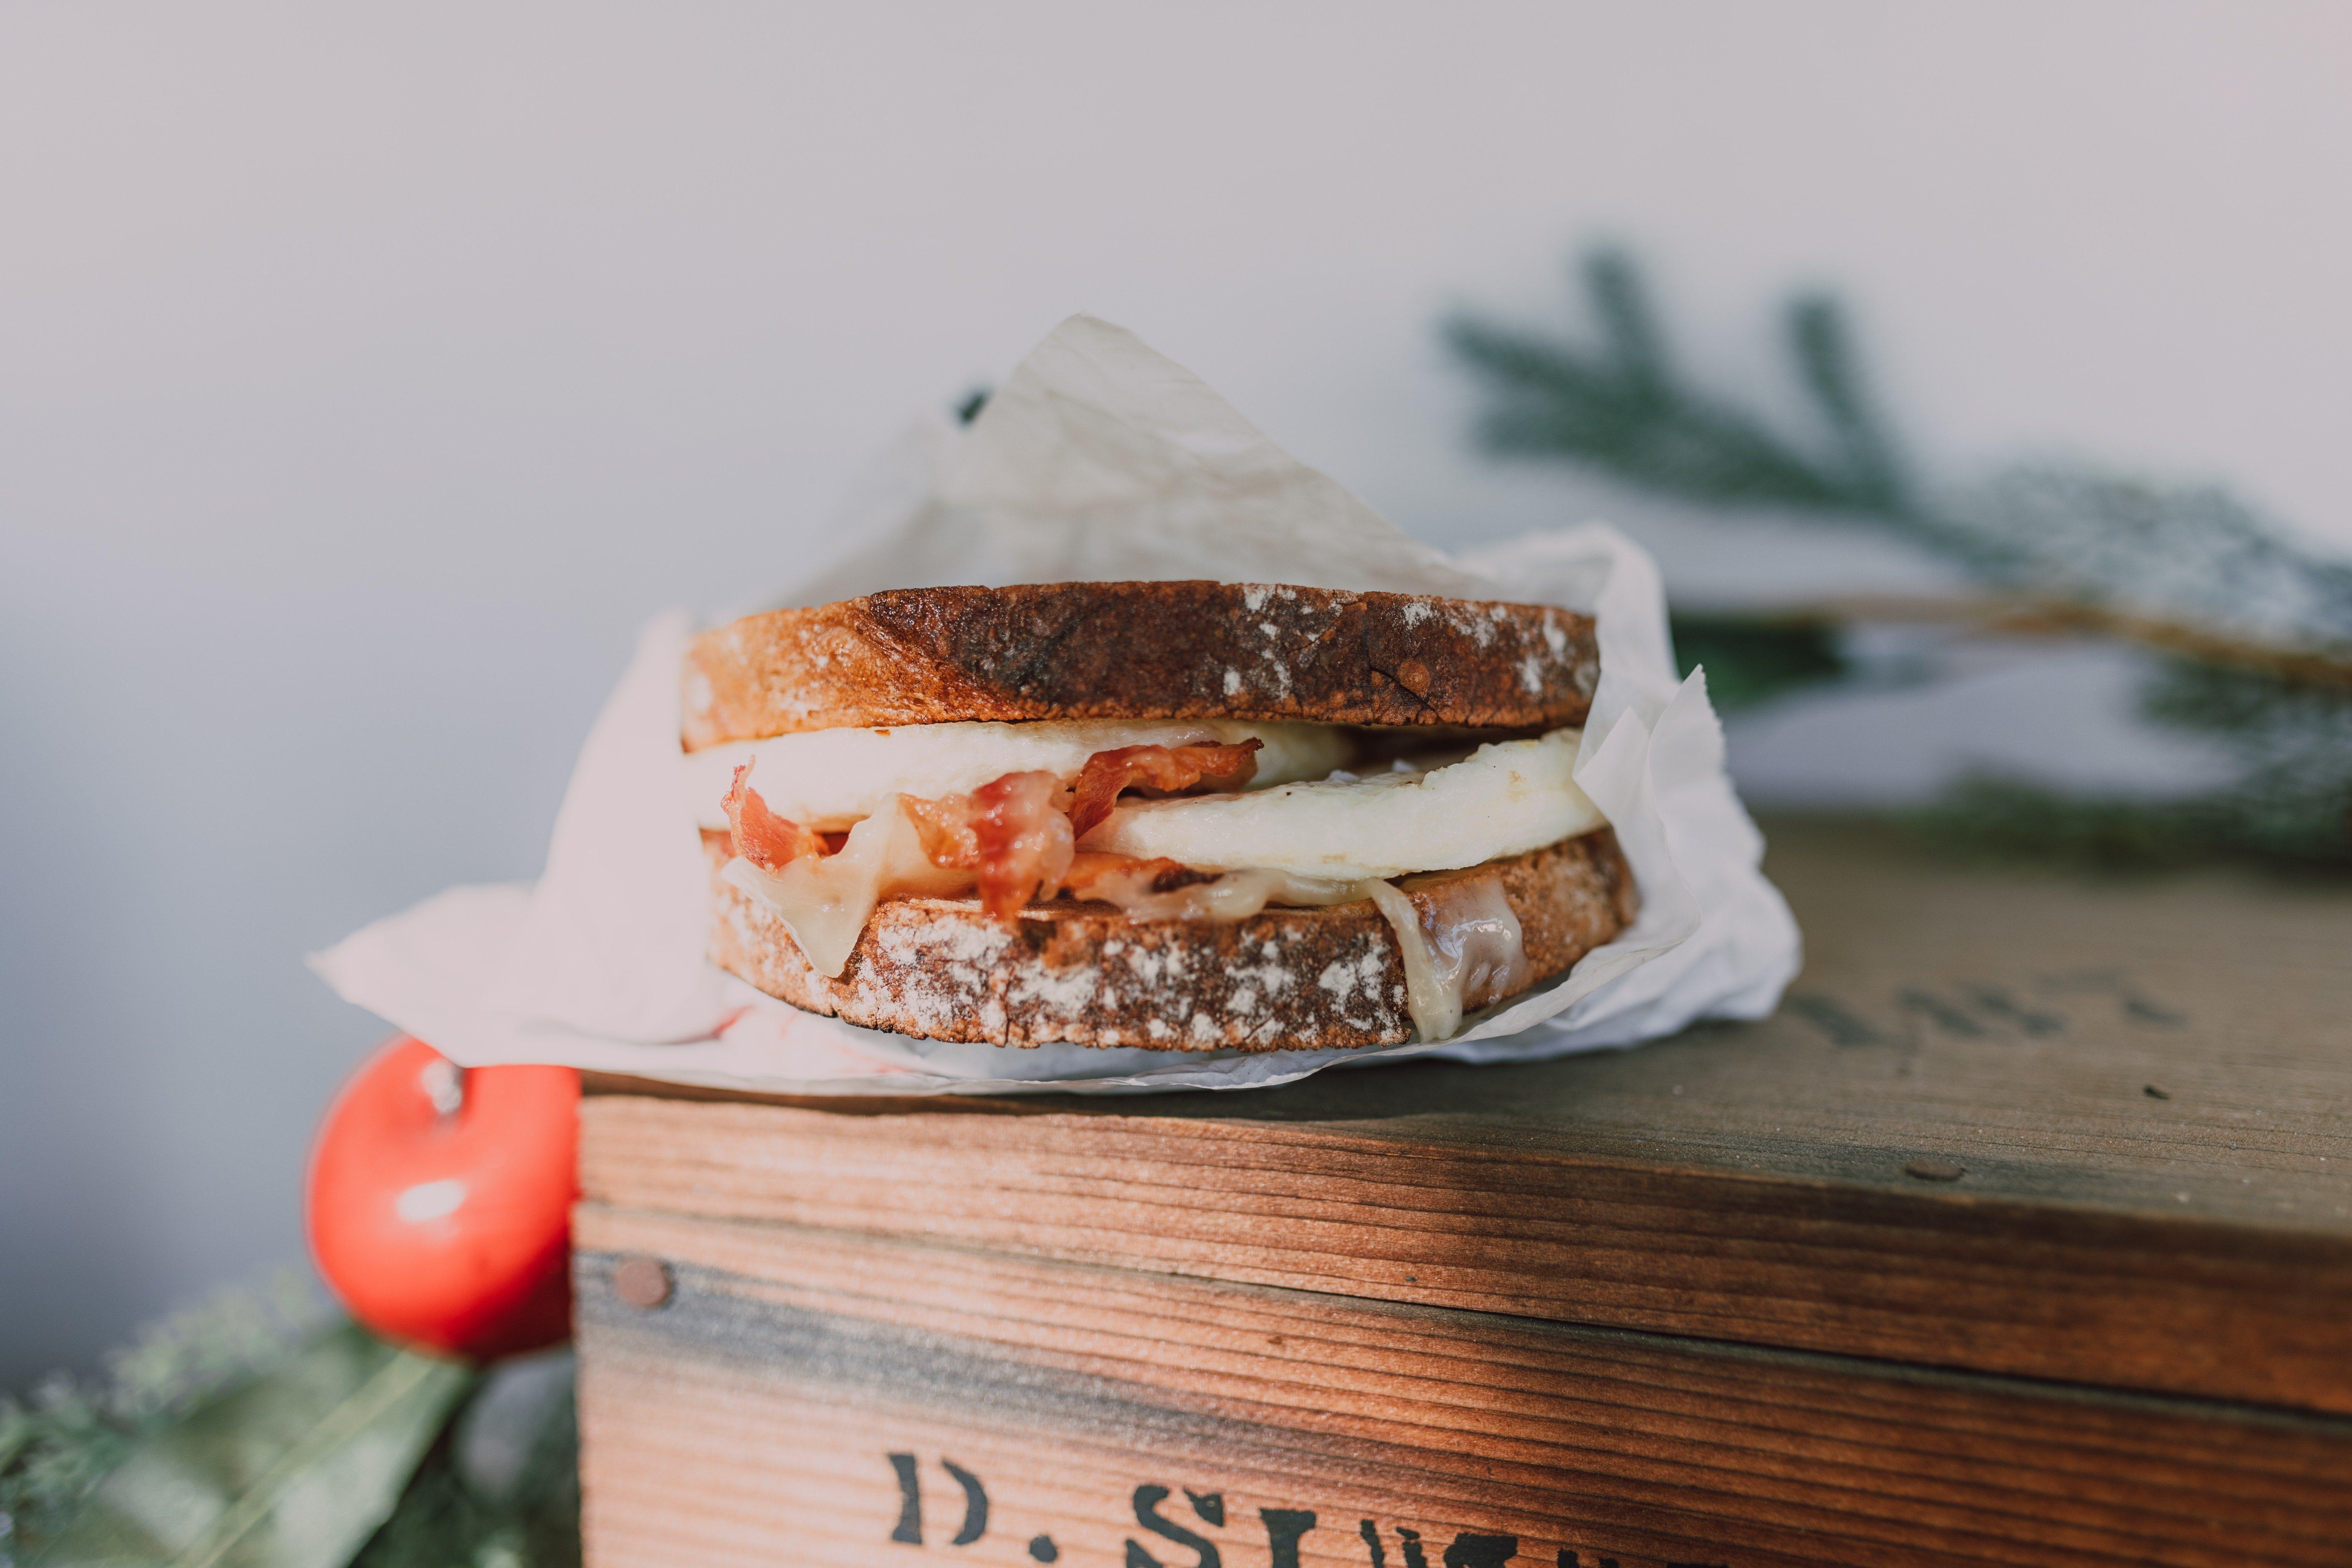 Mark had no idea where his missing sandwich was. | Photo: Pexels/RODNAE Productions